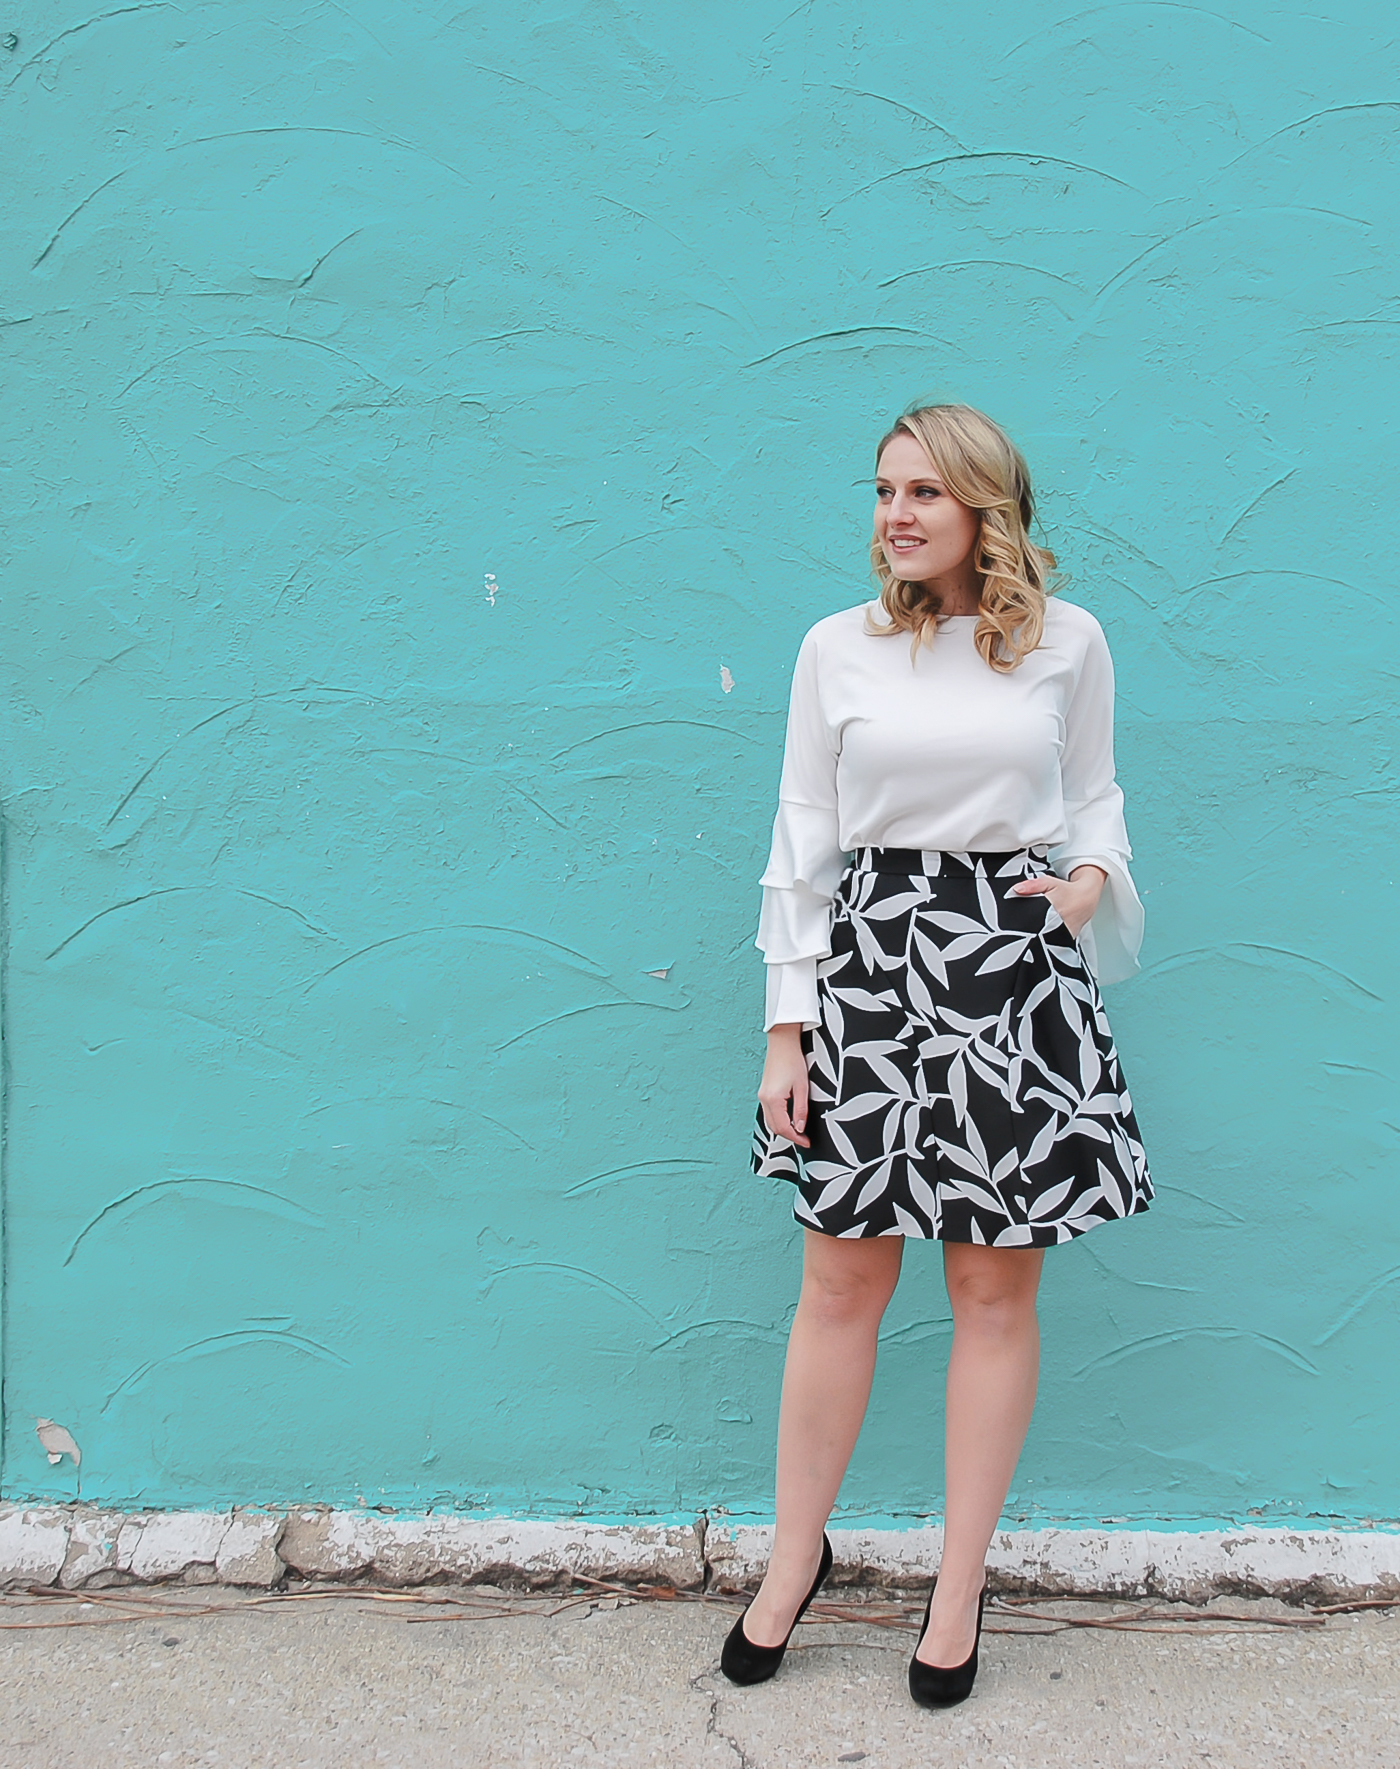 A SheIn bell sleeve blouse and Coast printed skirt